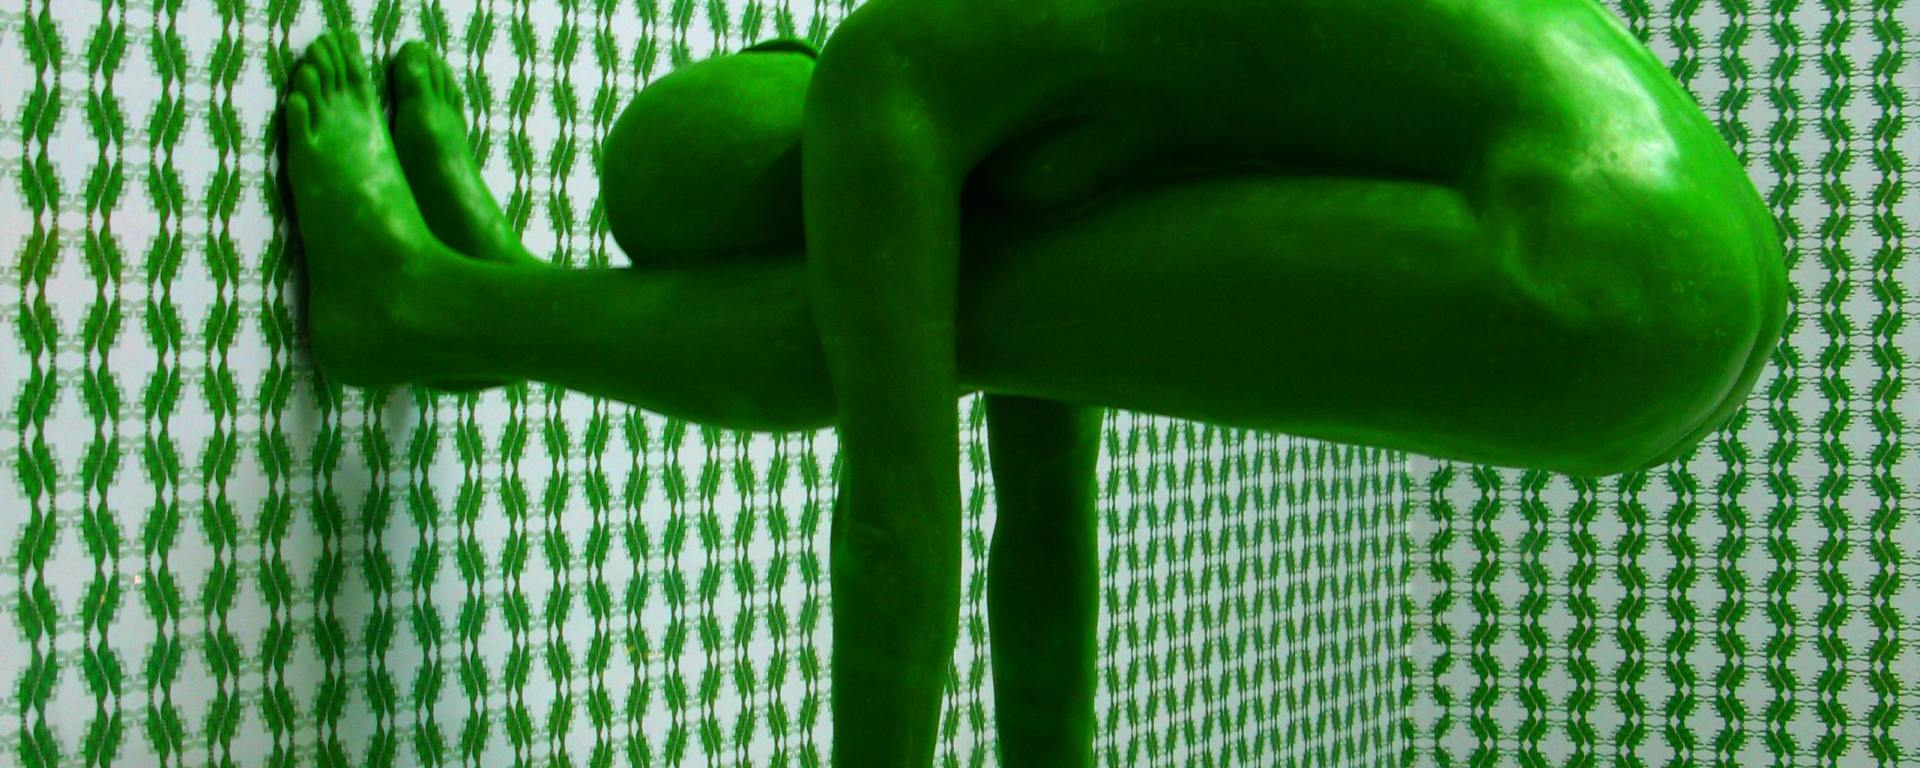 A Green man is bent in an unnatural state while hanging akwardly off a wall from his feet